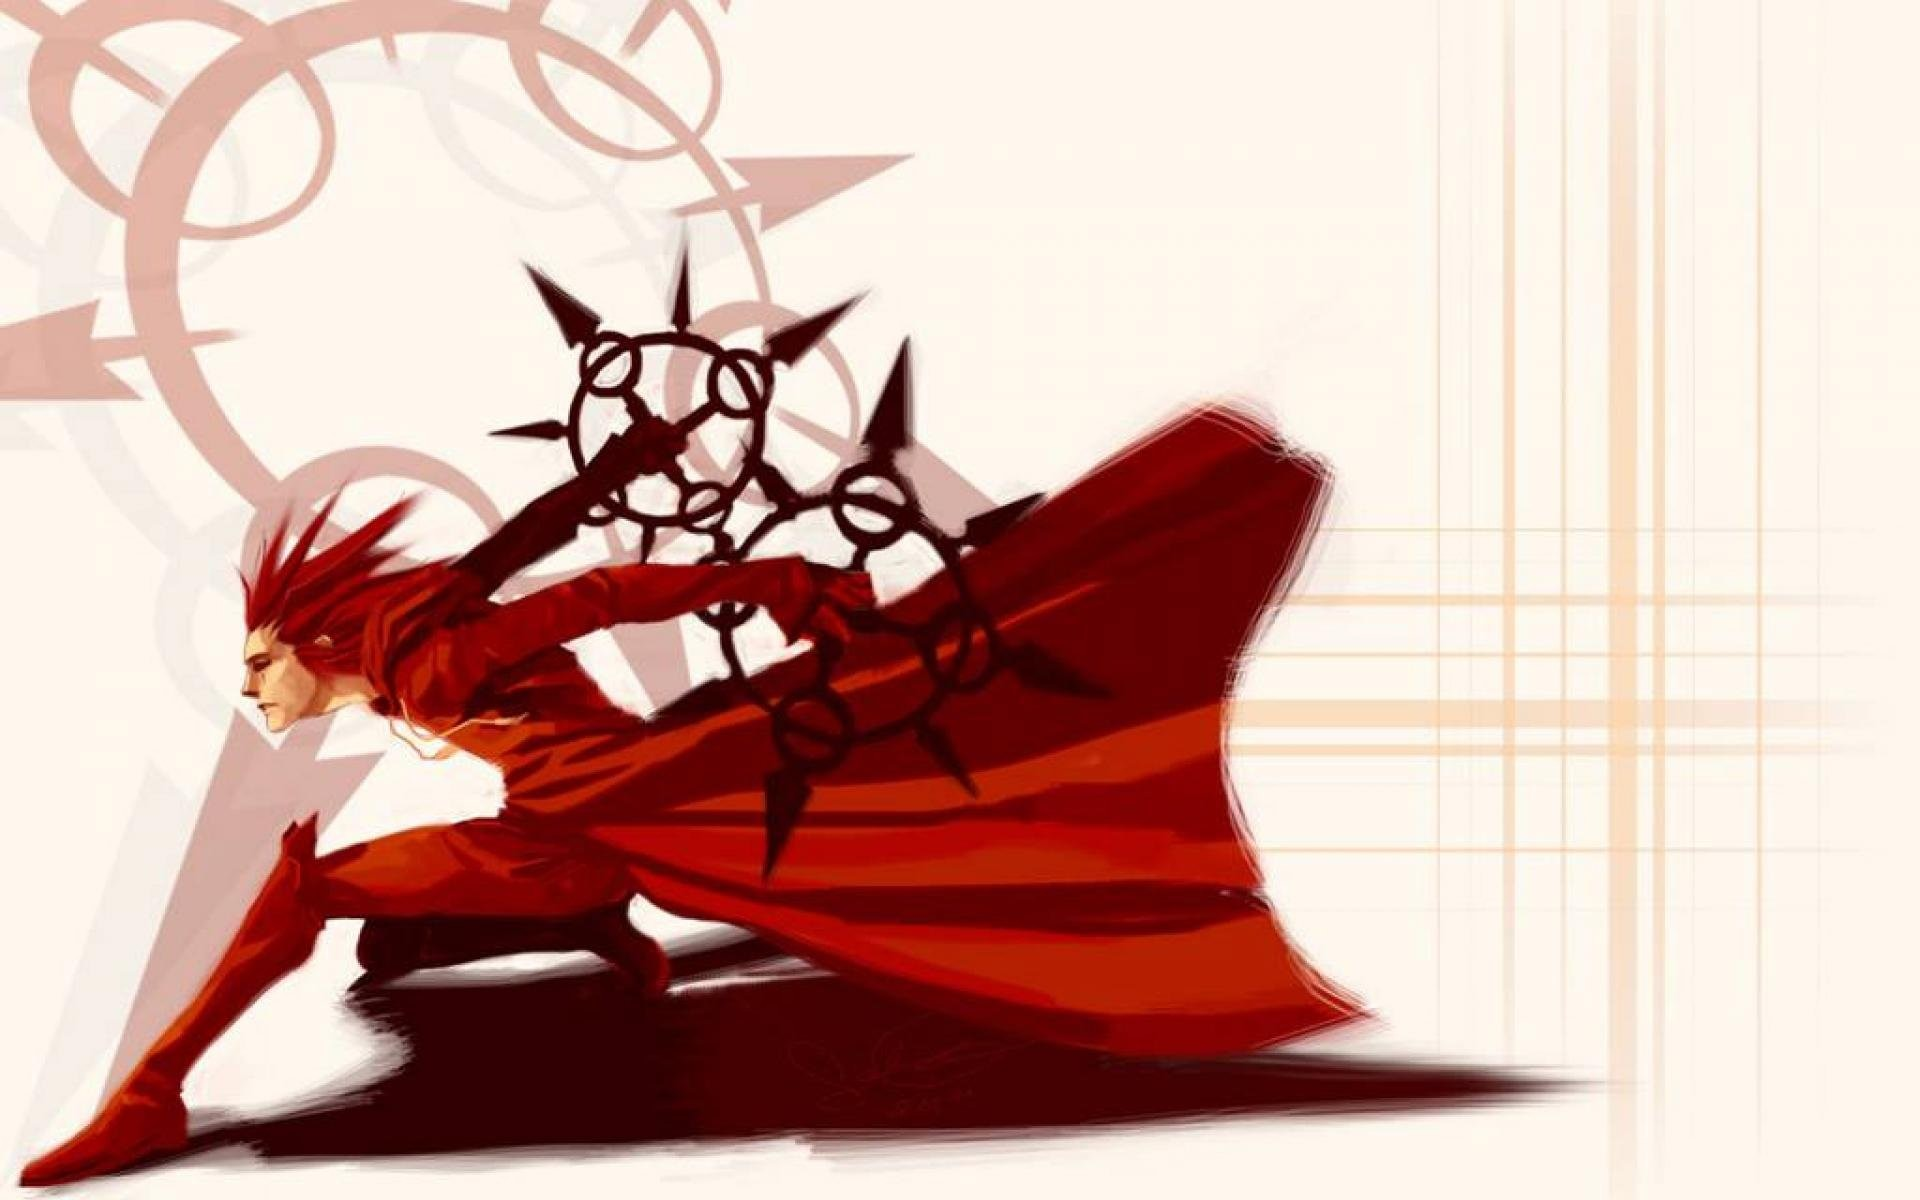 Wallpaper Axel Kingdom Hearts Pictures Images amp Photos